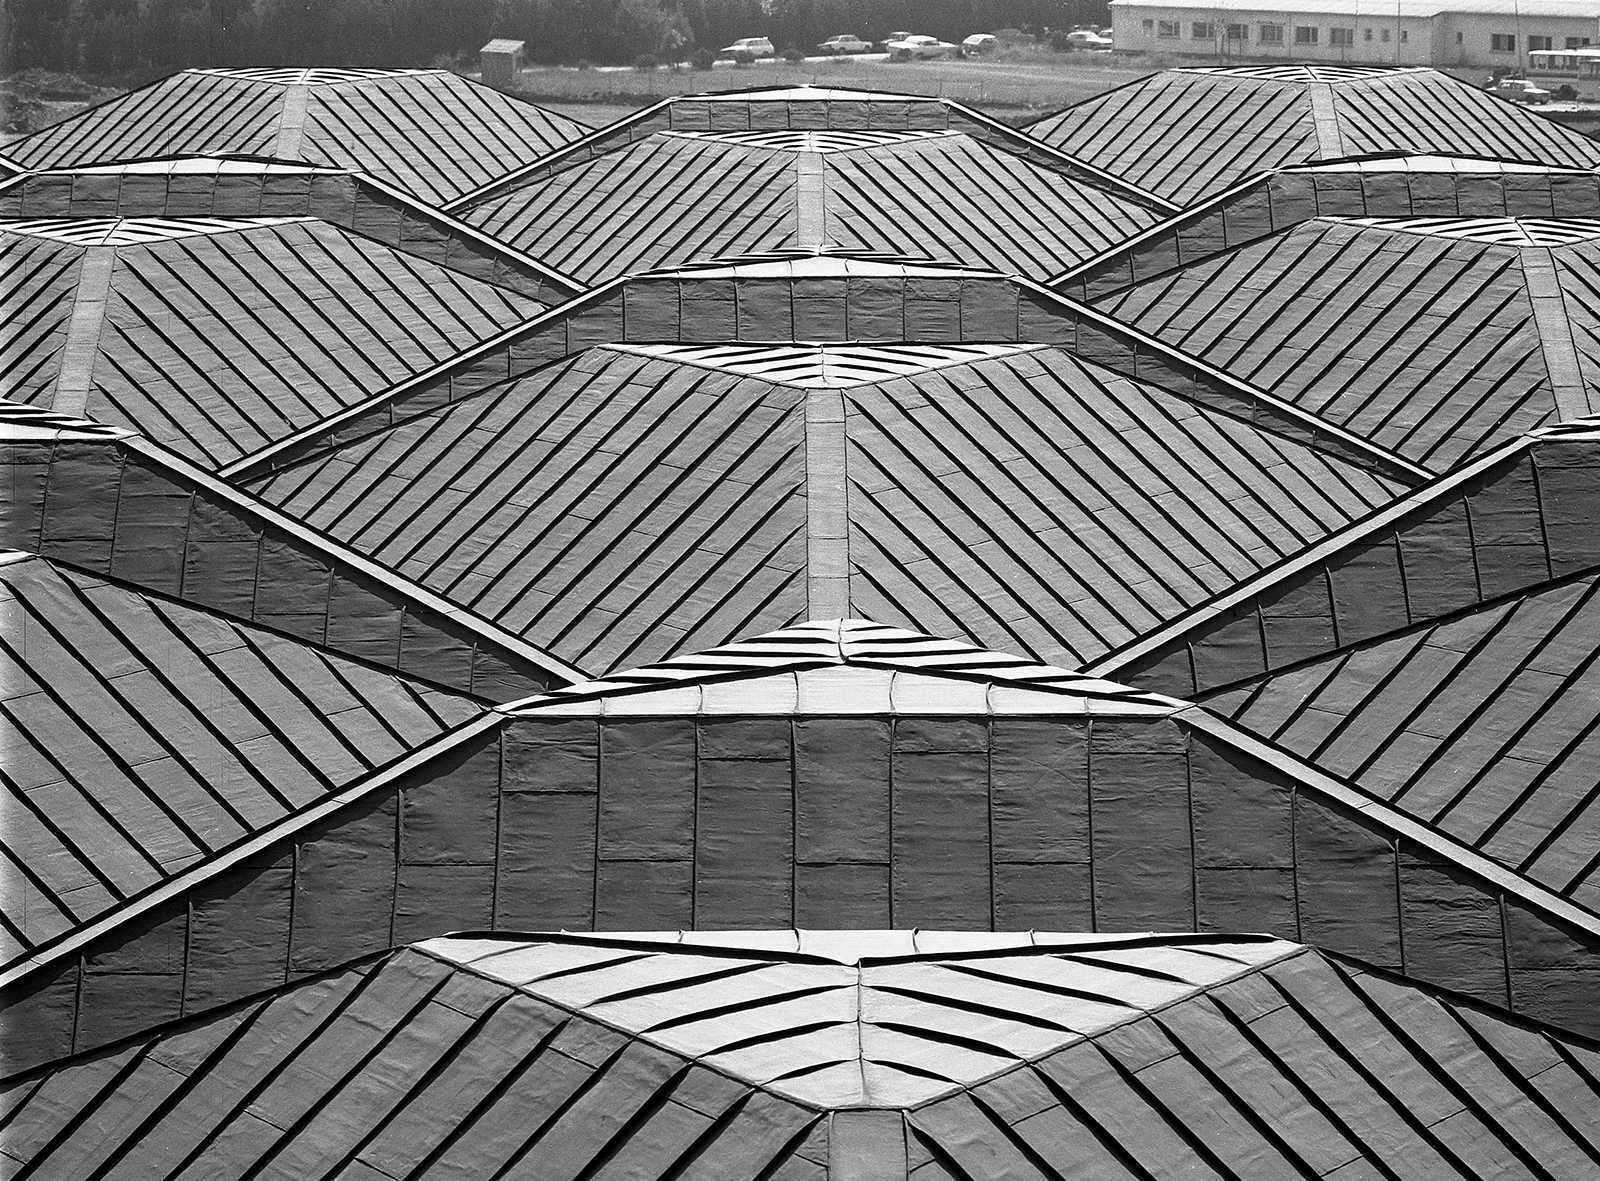 Yesilkoy Airport Terminal Roof, Hayati Tabanlioglu, 1991. Looking down from a high point on the axis of symmetry.